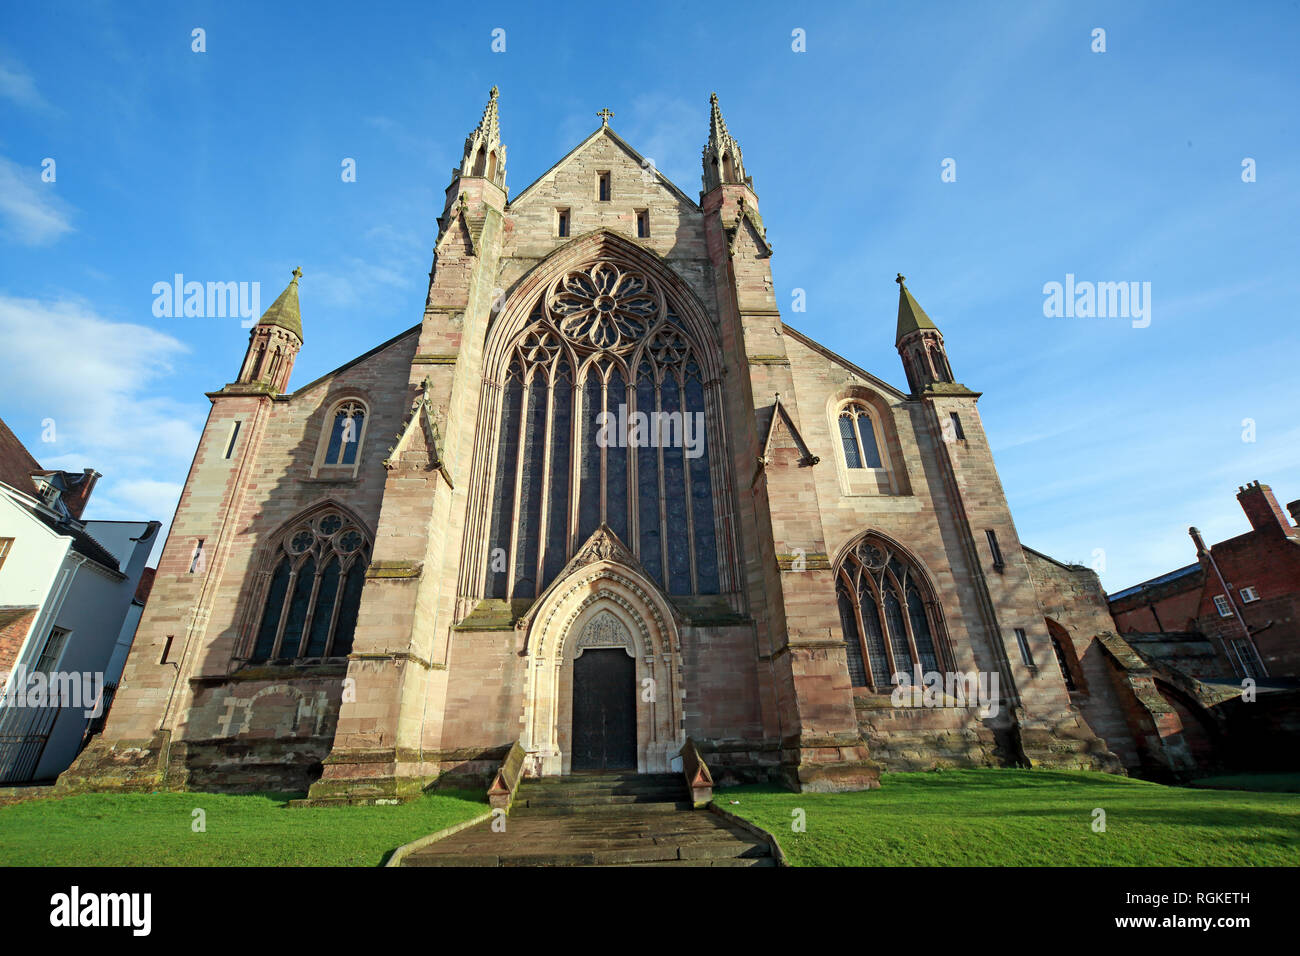 Cathedral Church of Christ and the Blessed Mary the Virgin, of Worcester, 8 College Yard, Worcester, UK, WR1 2LA - Stock Image